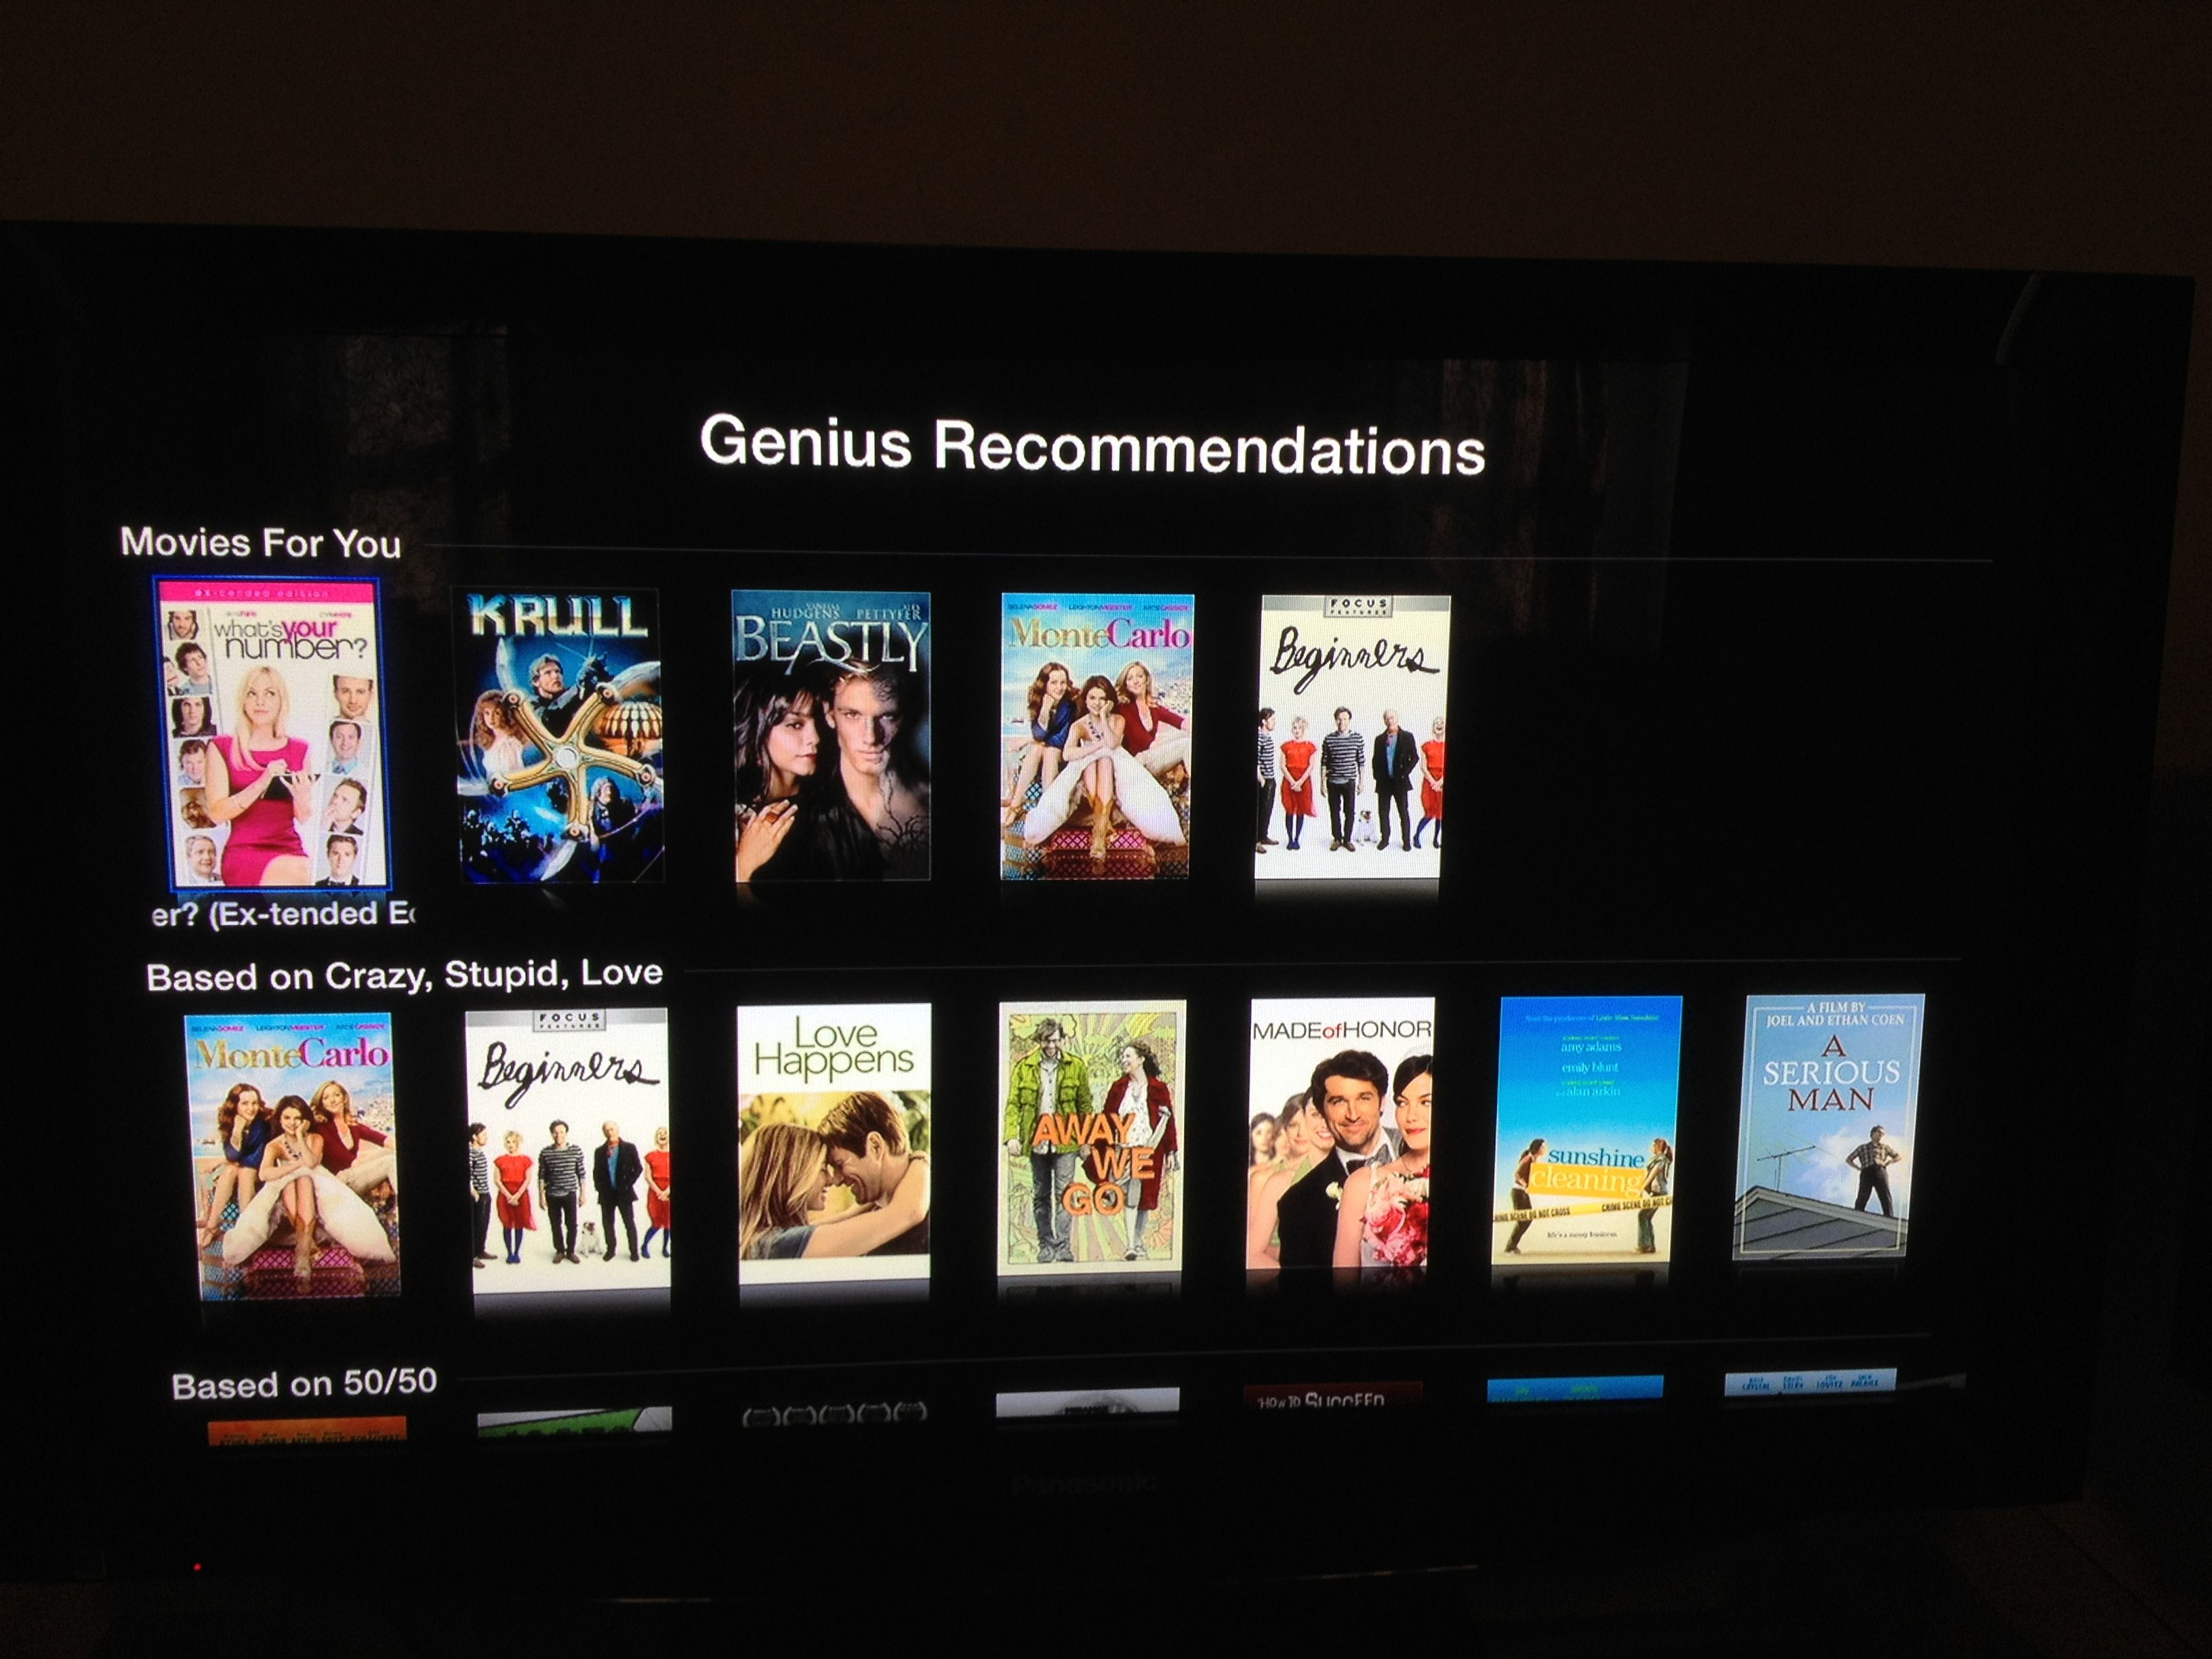 Apple brings Netflix-like discovery to Apple TV with Genius suggestions for movies and TV shows